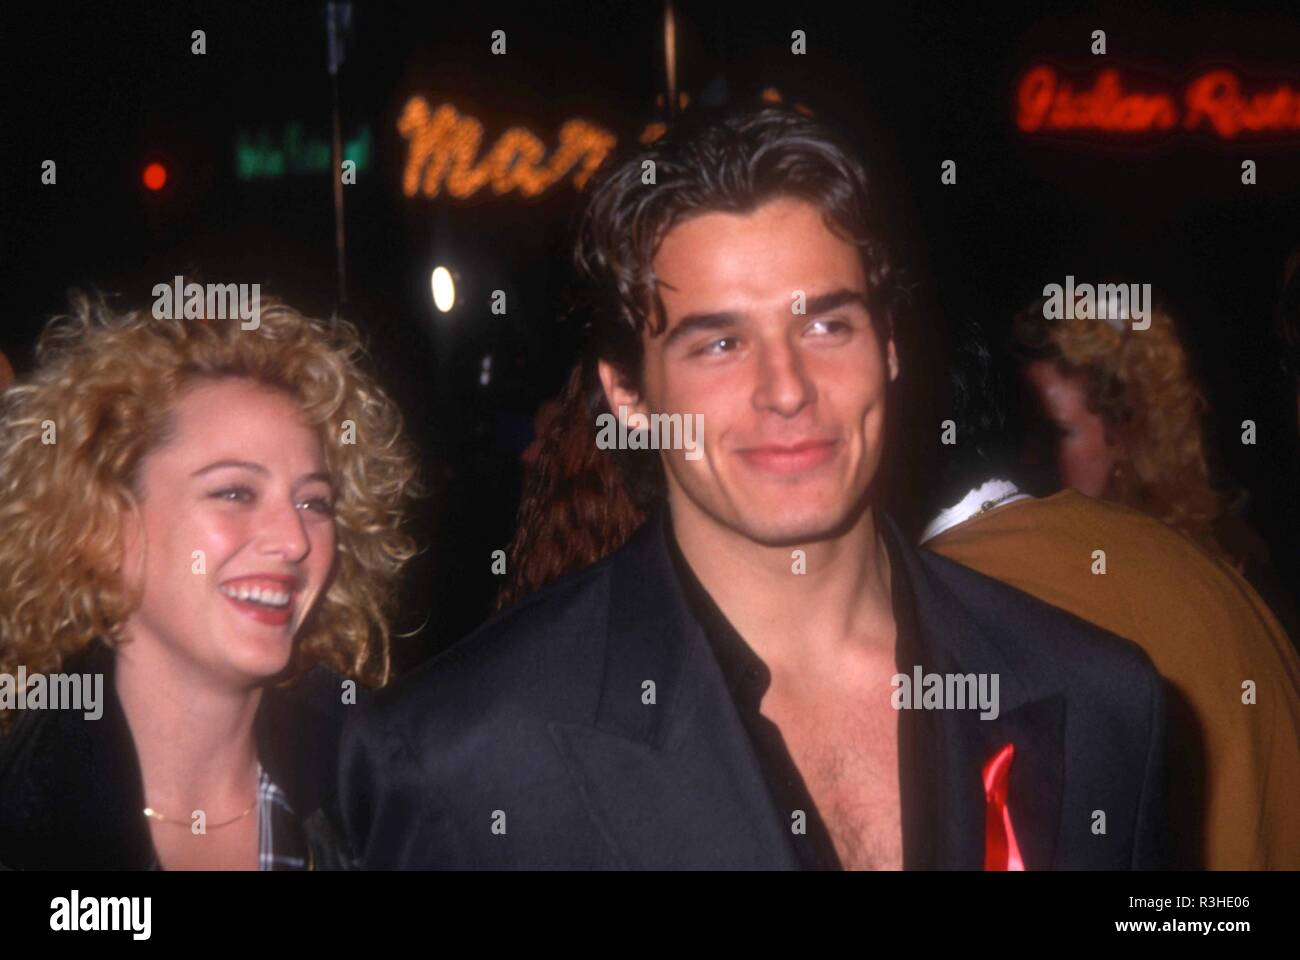 WESTWOOD, CA - FEBRUARY 4: Actress Virginia Madsen and actor Antonio Sabato Jr. attend Columbia Pictures' 'Groundhog Day' Premiere on February 4, 1993 at Mann Village Theatre in Westwood, California. Photo by Barry King/Alamy Stock Photo - Stock Image